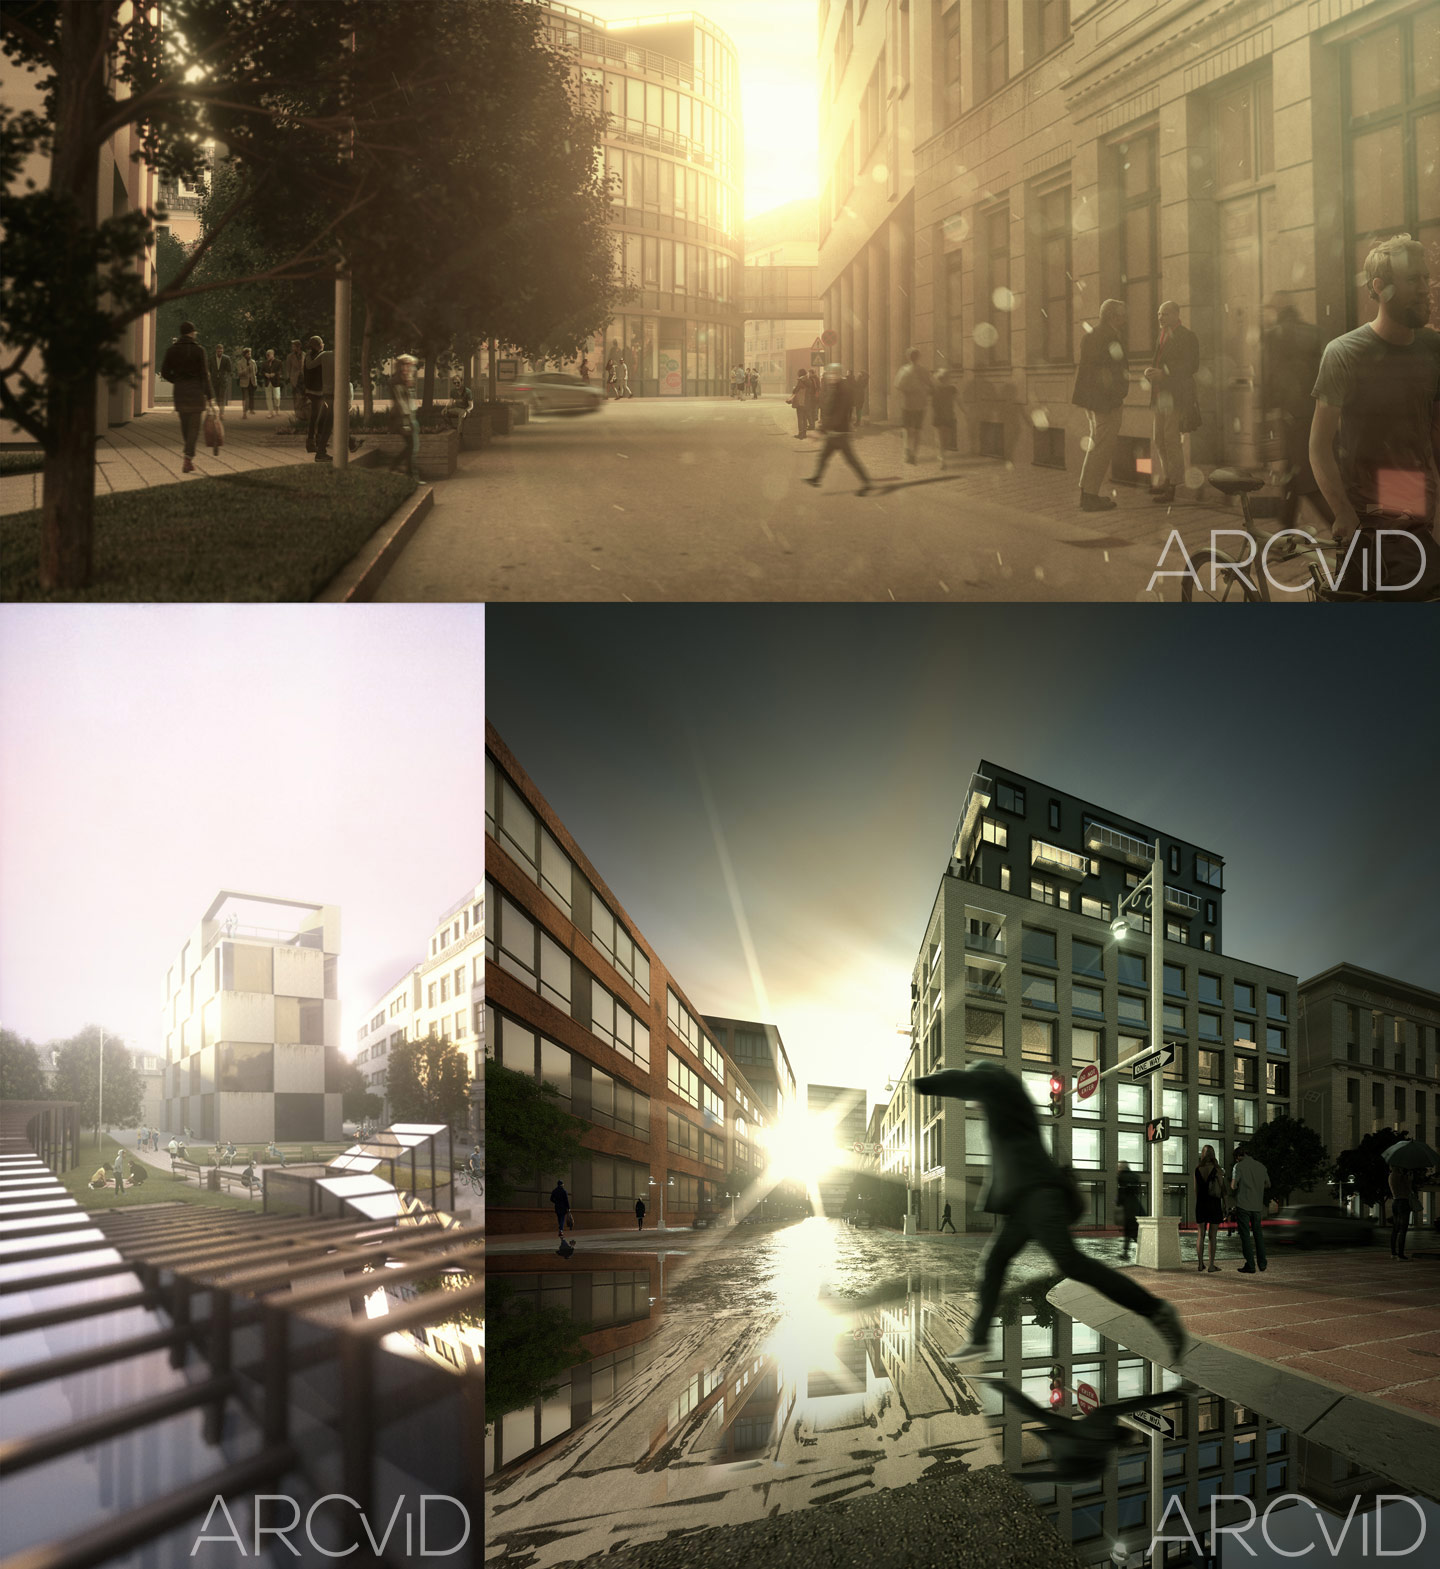 architectural visualization services in greenville